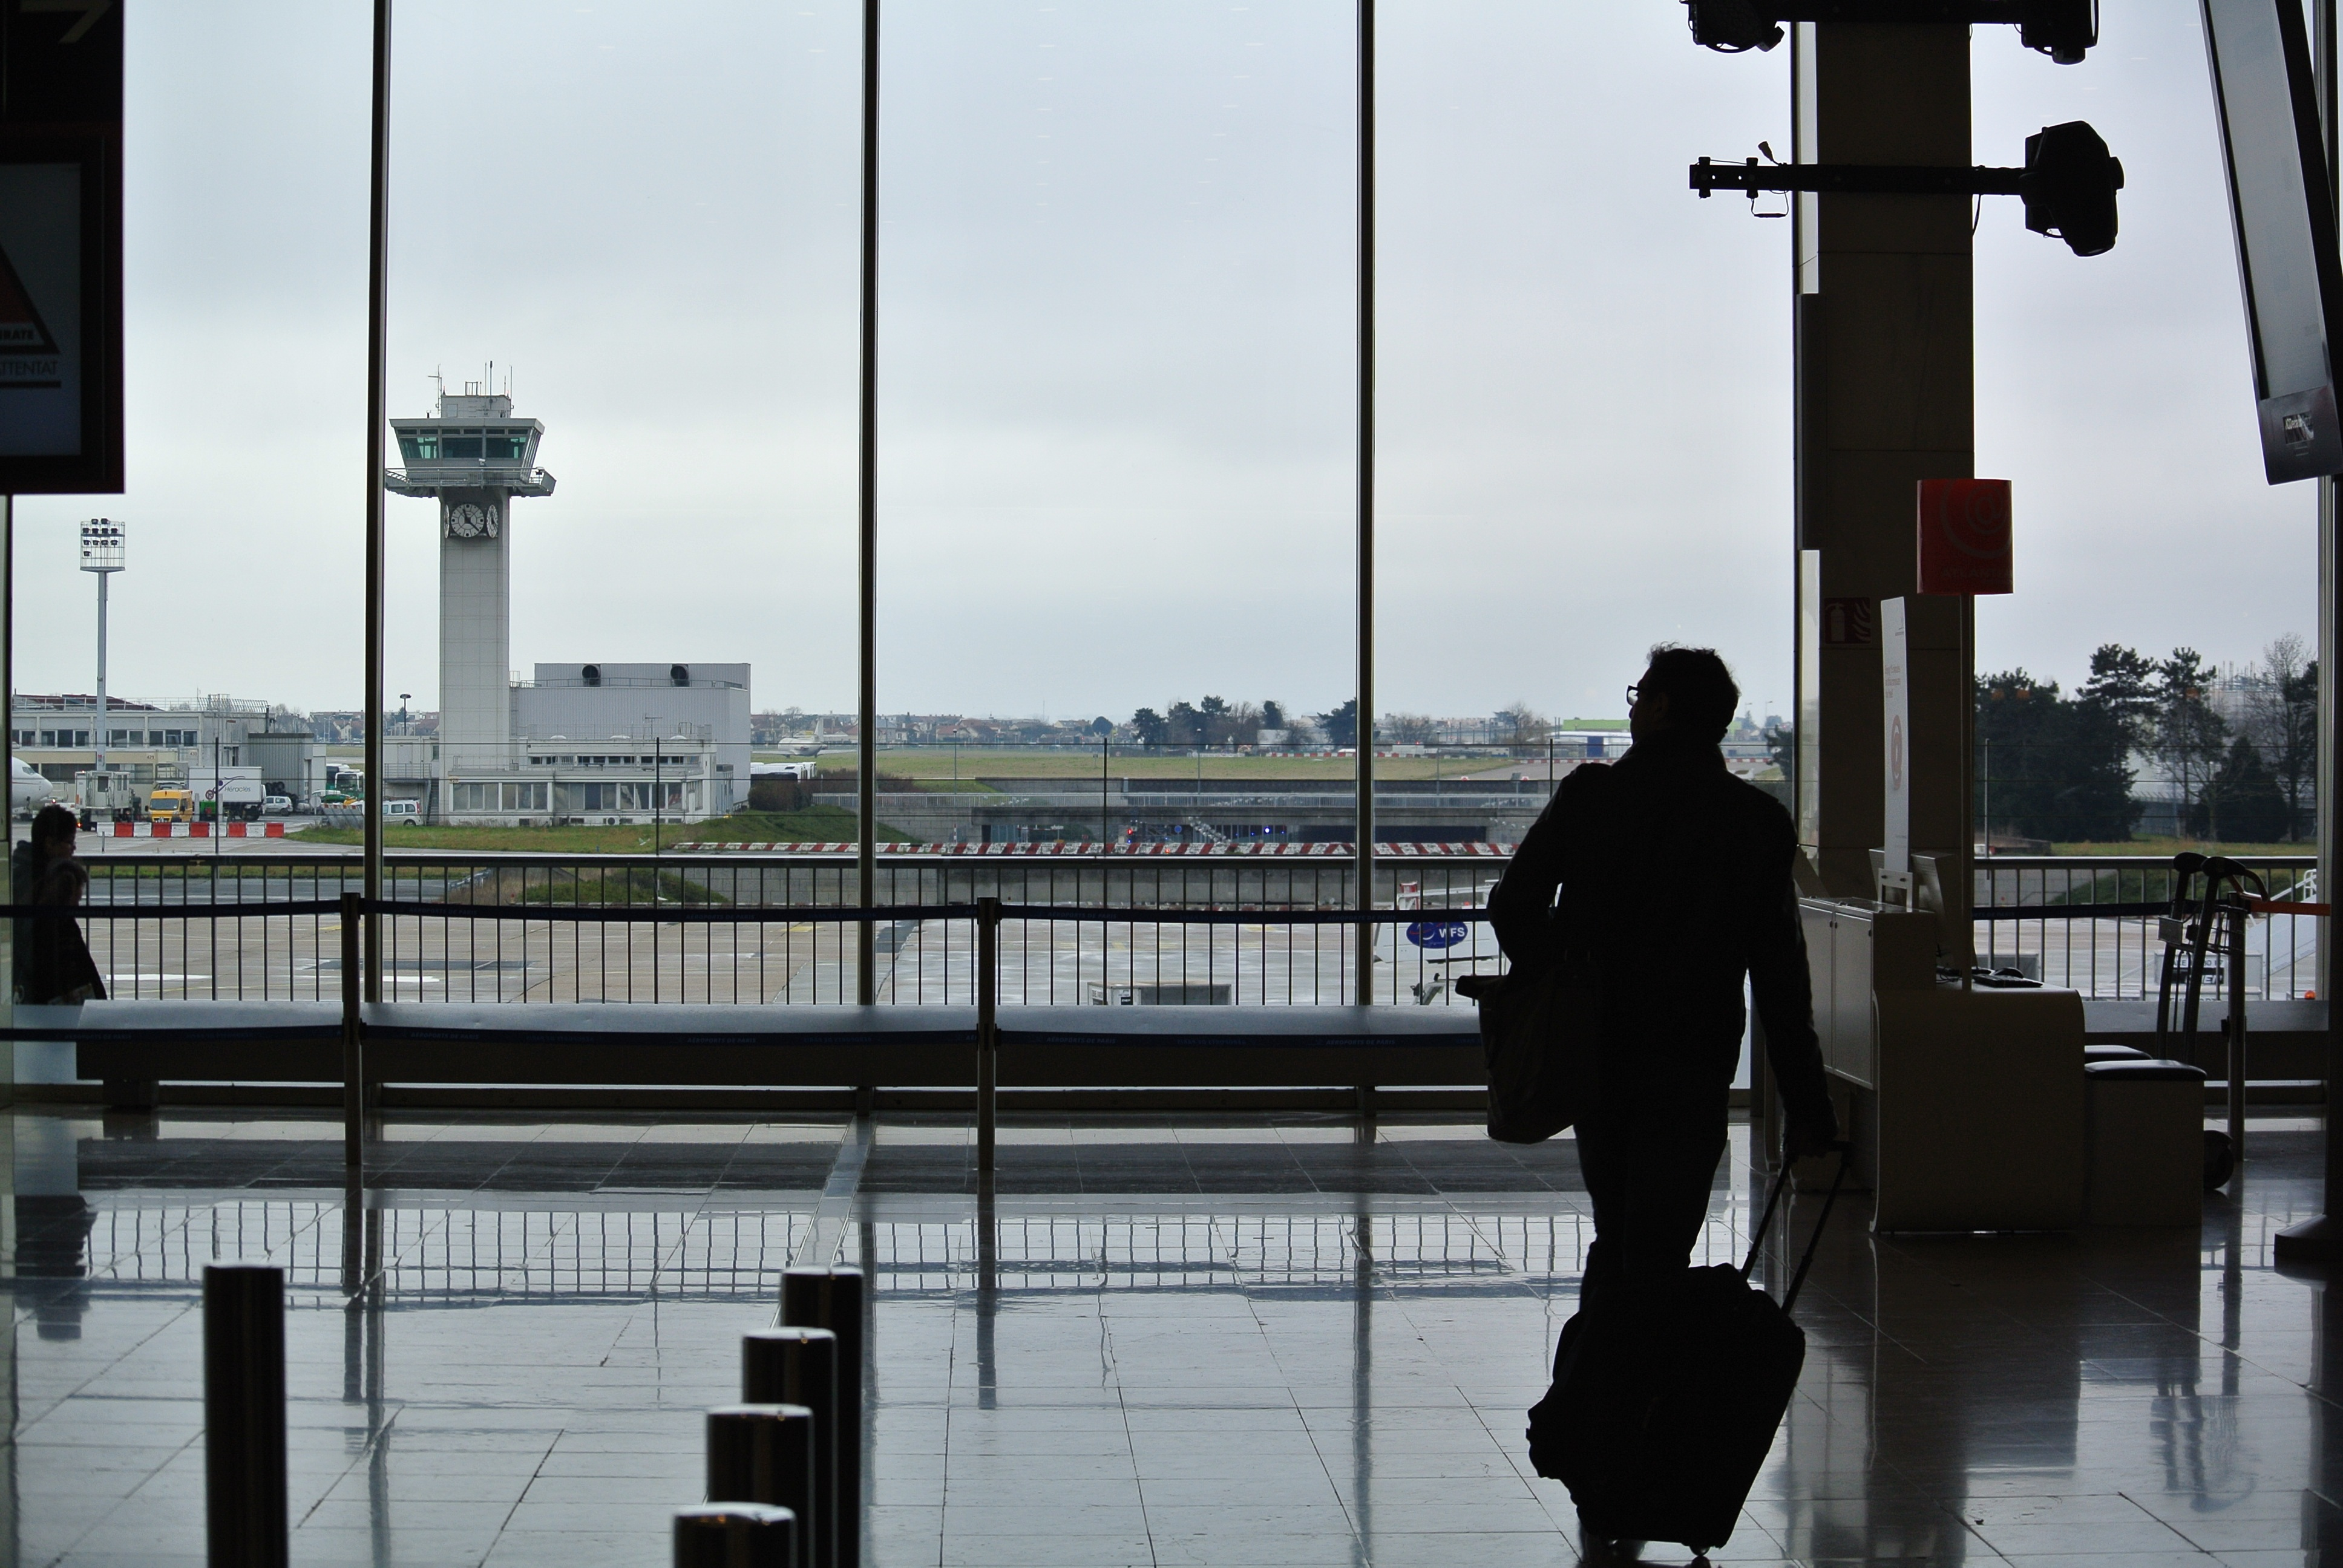 safety tips for traveling alone hired car service transportation to airport